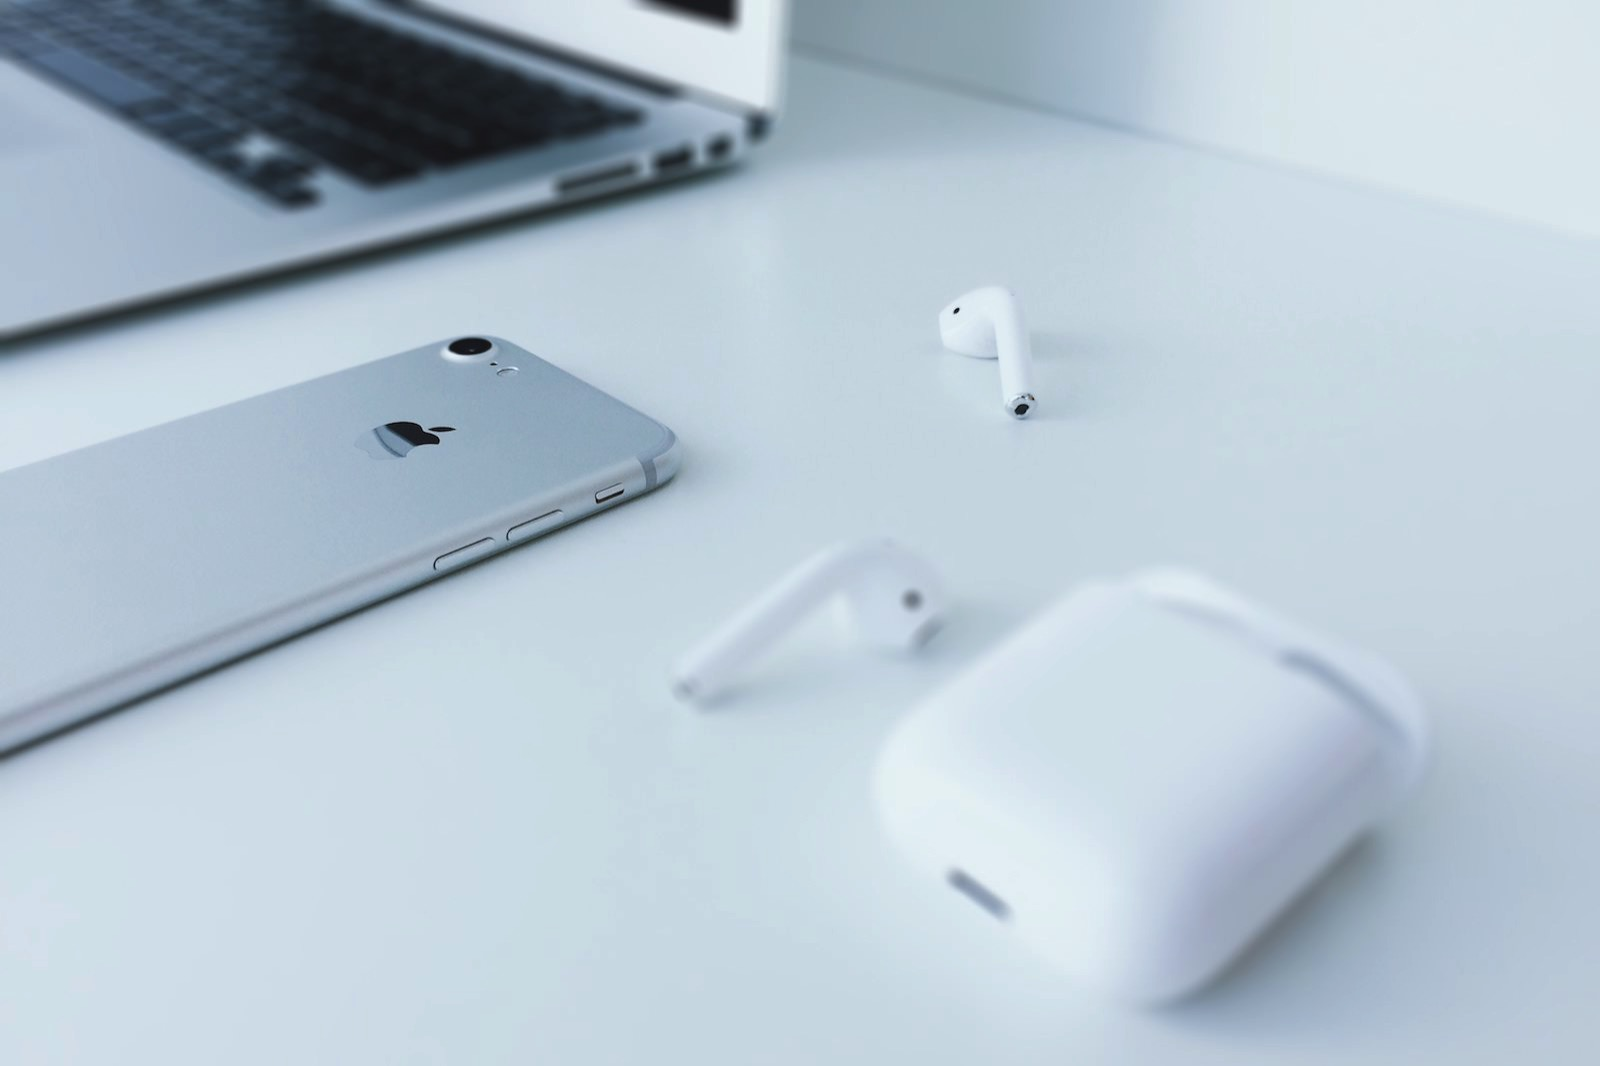 Remy loz 304940 unsplash airpods iphone macbook